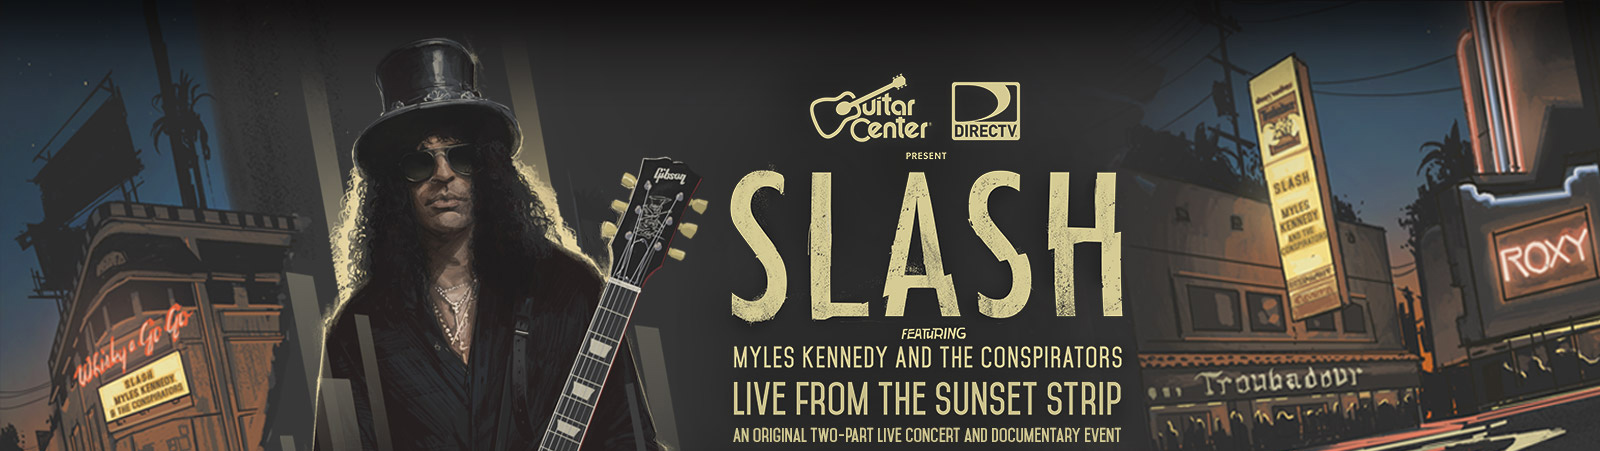 Slash Featuring - Myles Kennedy and The Conspirators Live from the Sunset Strip presented by Gibson Epiphone